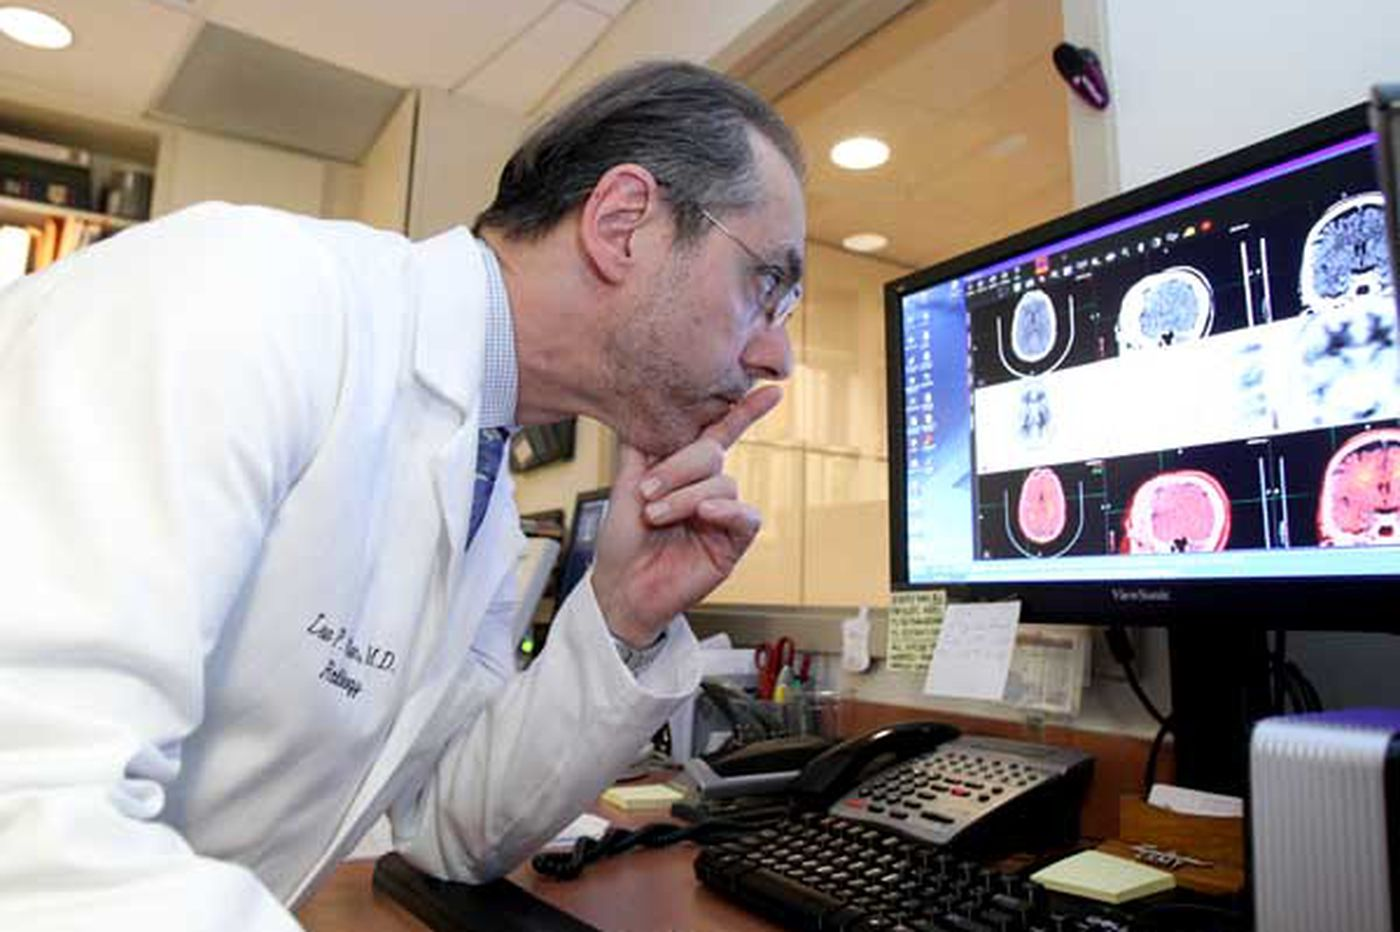 New test could help diagnose Alzheimer's disease in live patients